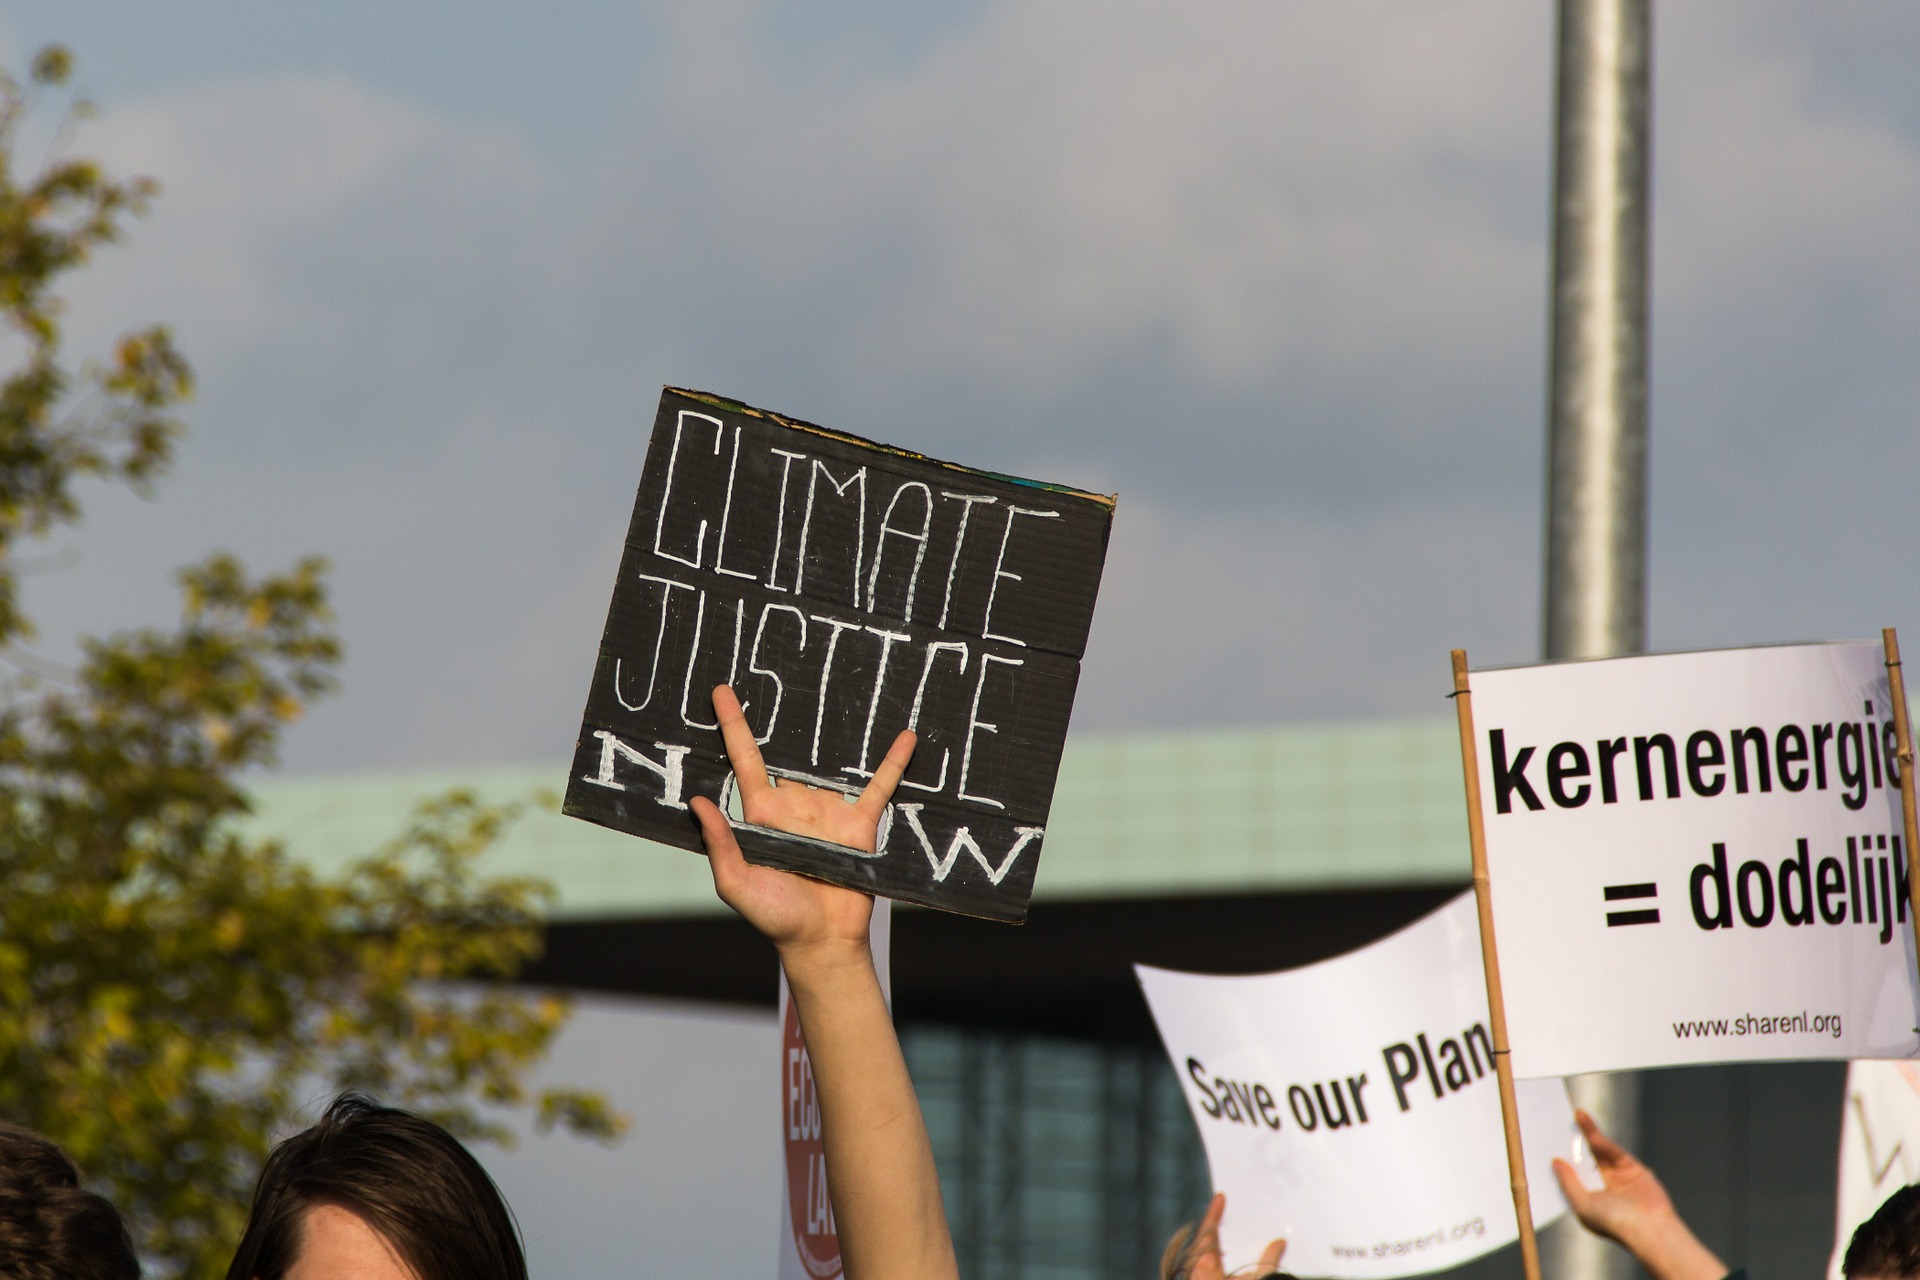 The Green New Deal for Europe paves the way for global justice